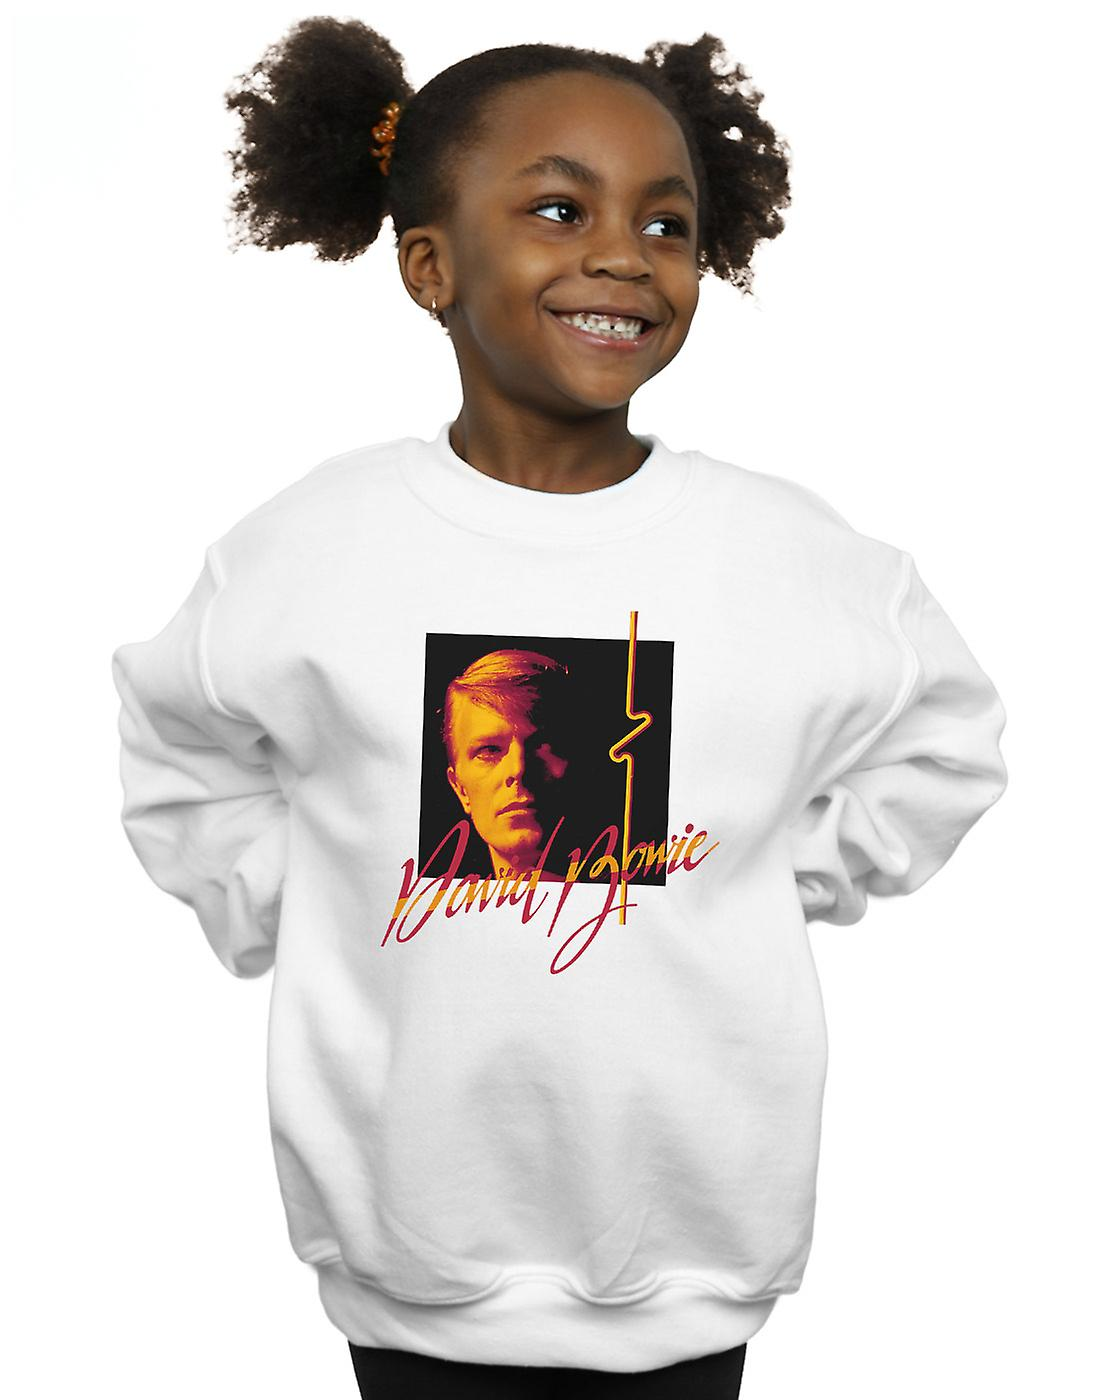 David Bowie Girls Photo Angle 90s Sweatshirt